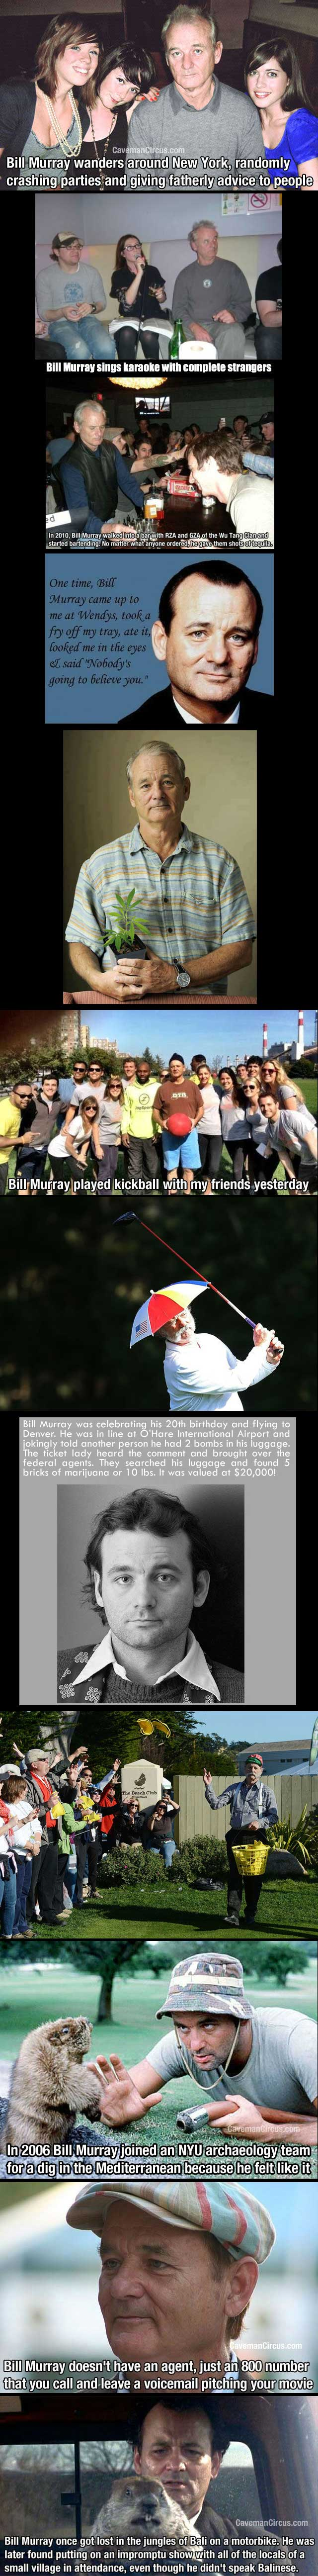 bill-murray-is-awesome